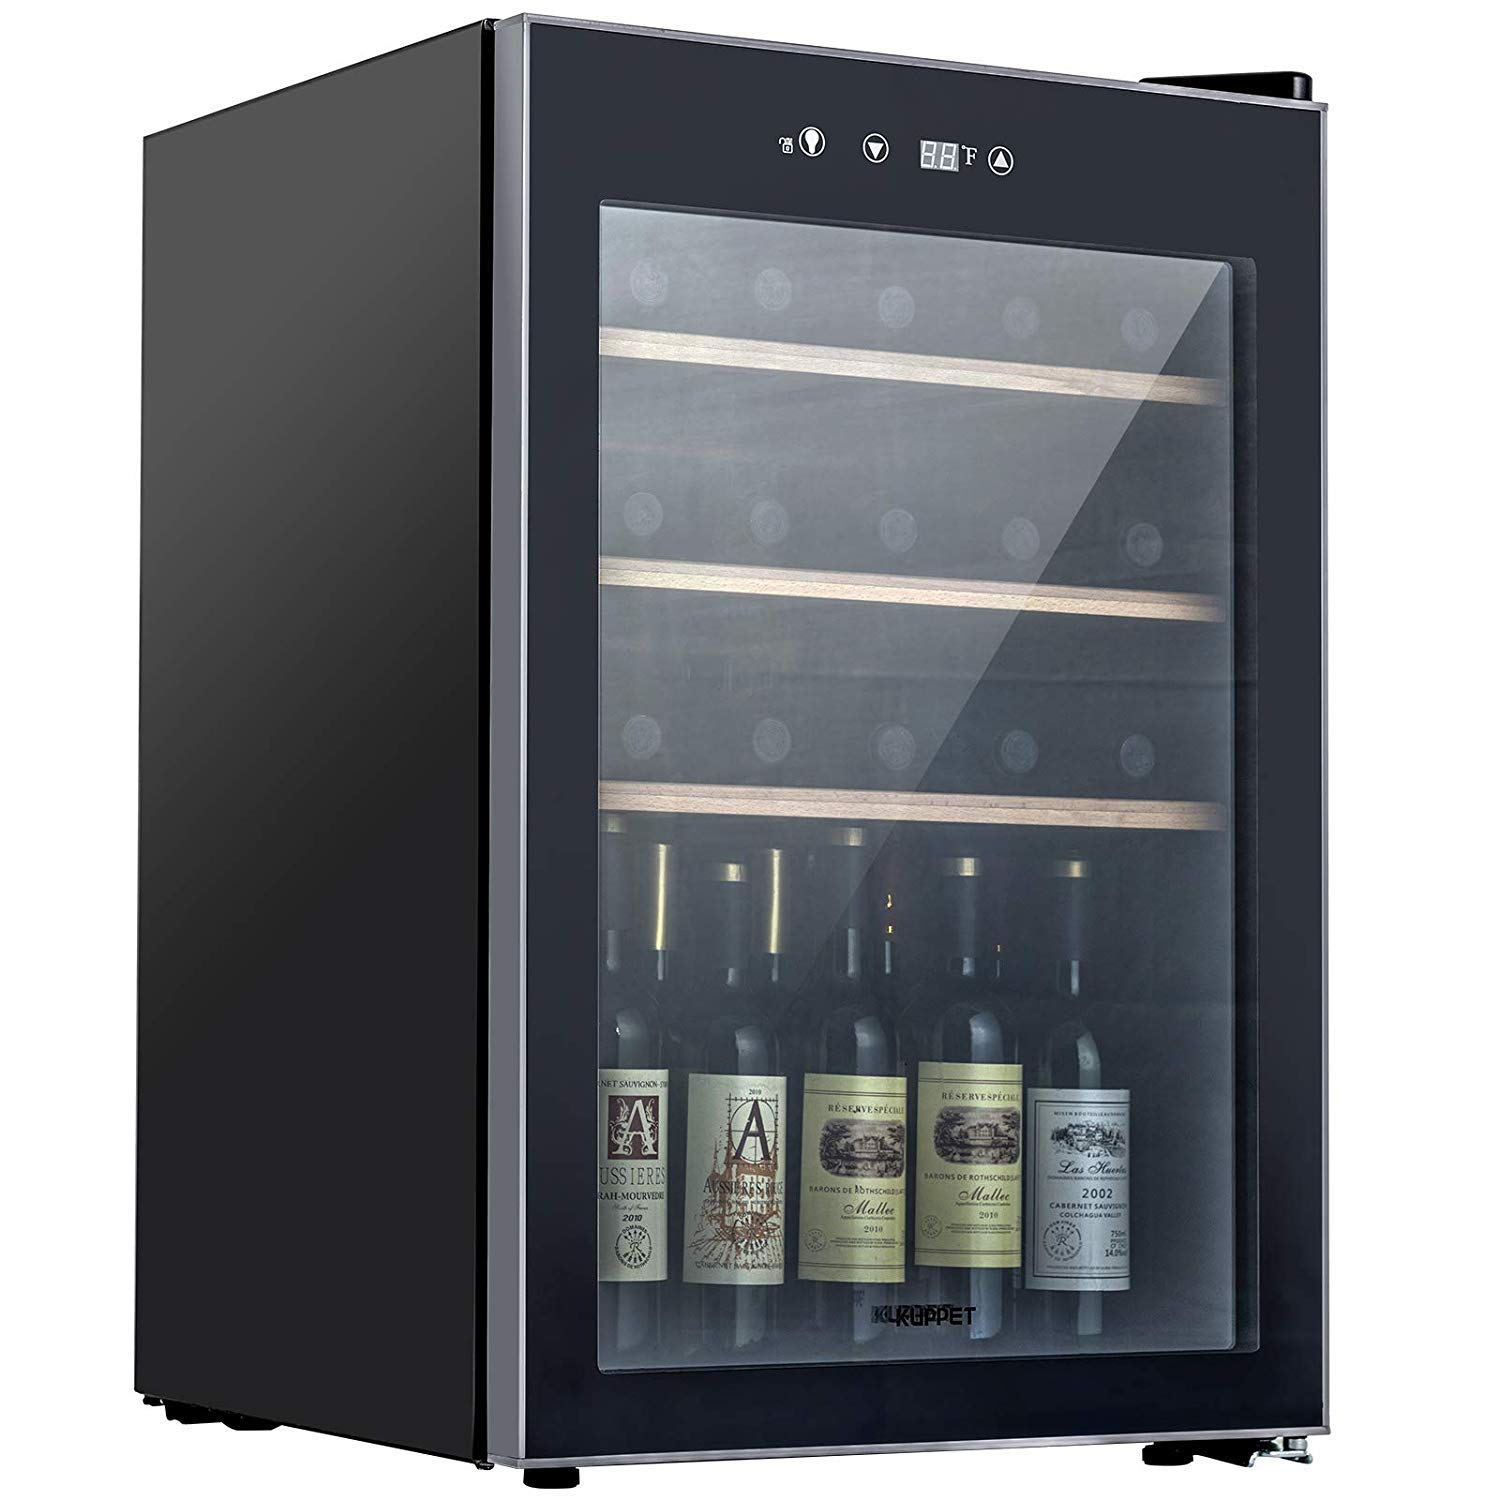 KUPPET Thermoelectric 35 Bottle Wine Cooler, Counter Top Wine Cellar, Red and White Wine Chiller, Freestanding Refrigerator, Quiet Operation Fridge (Wooden shelf)